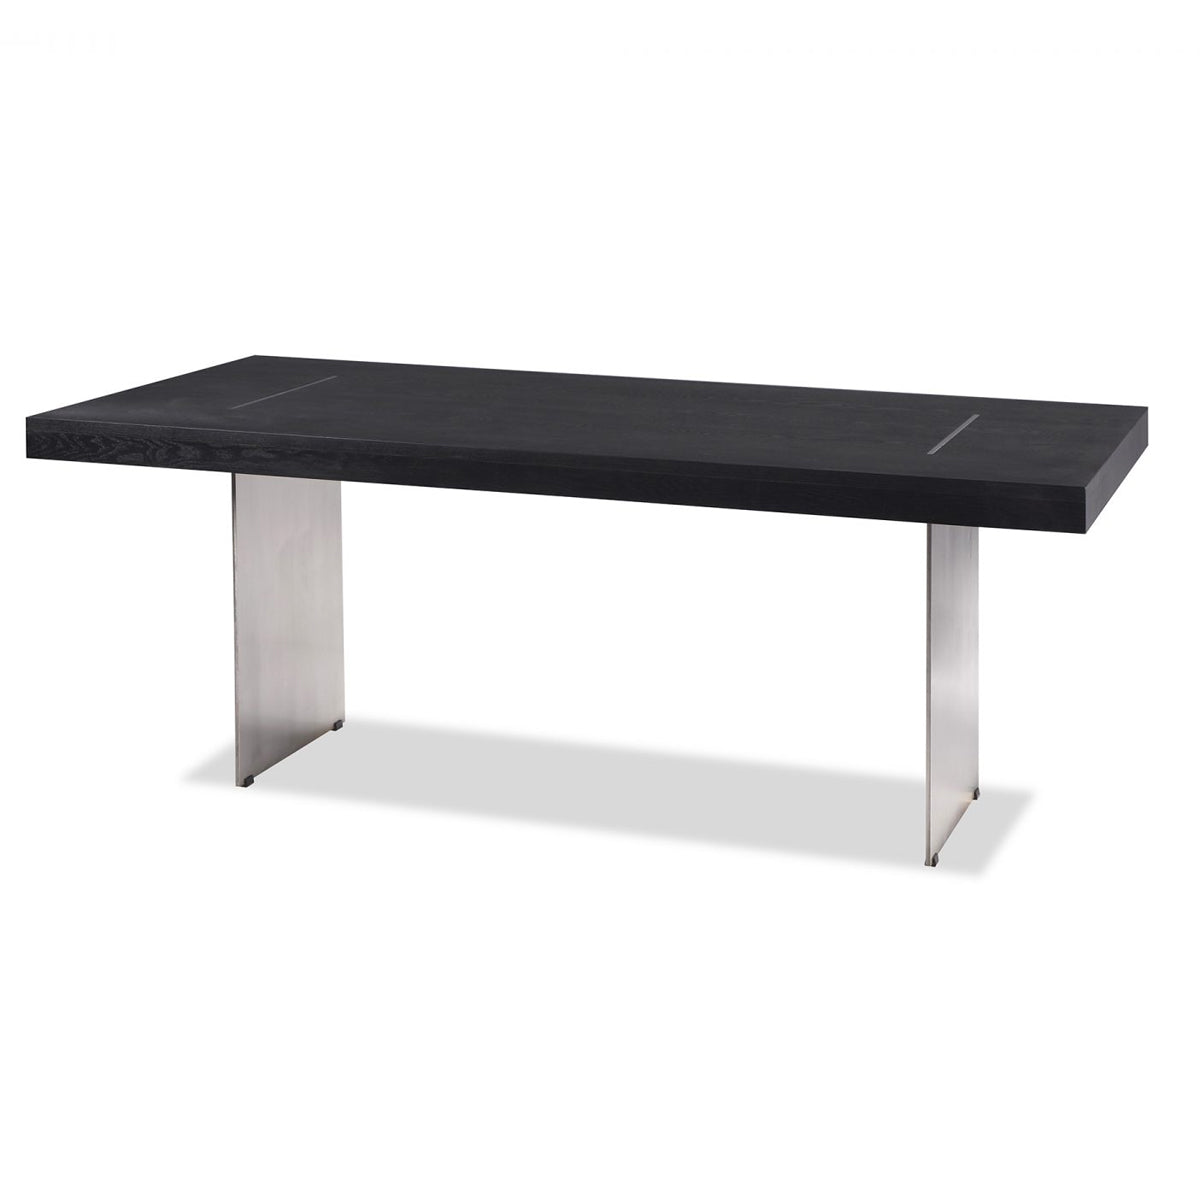 Liang Eimil Unma Dining Table In Black Ash With Stainless Steel Shropshire Design